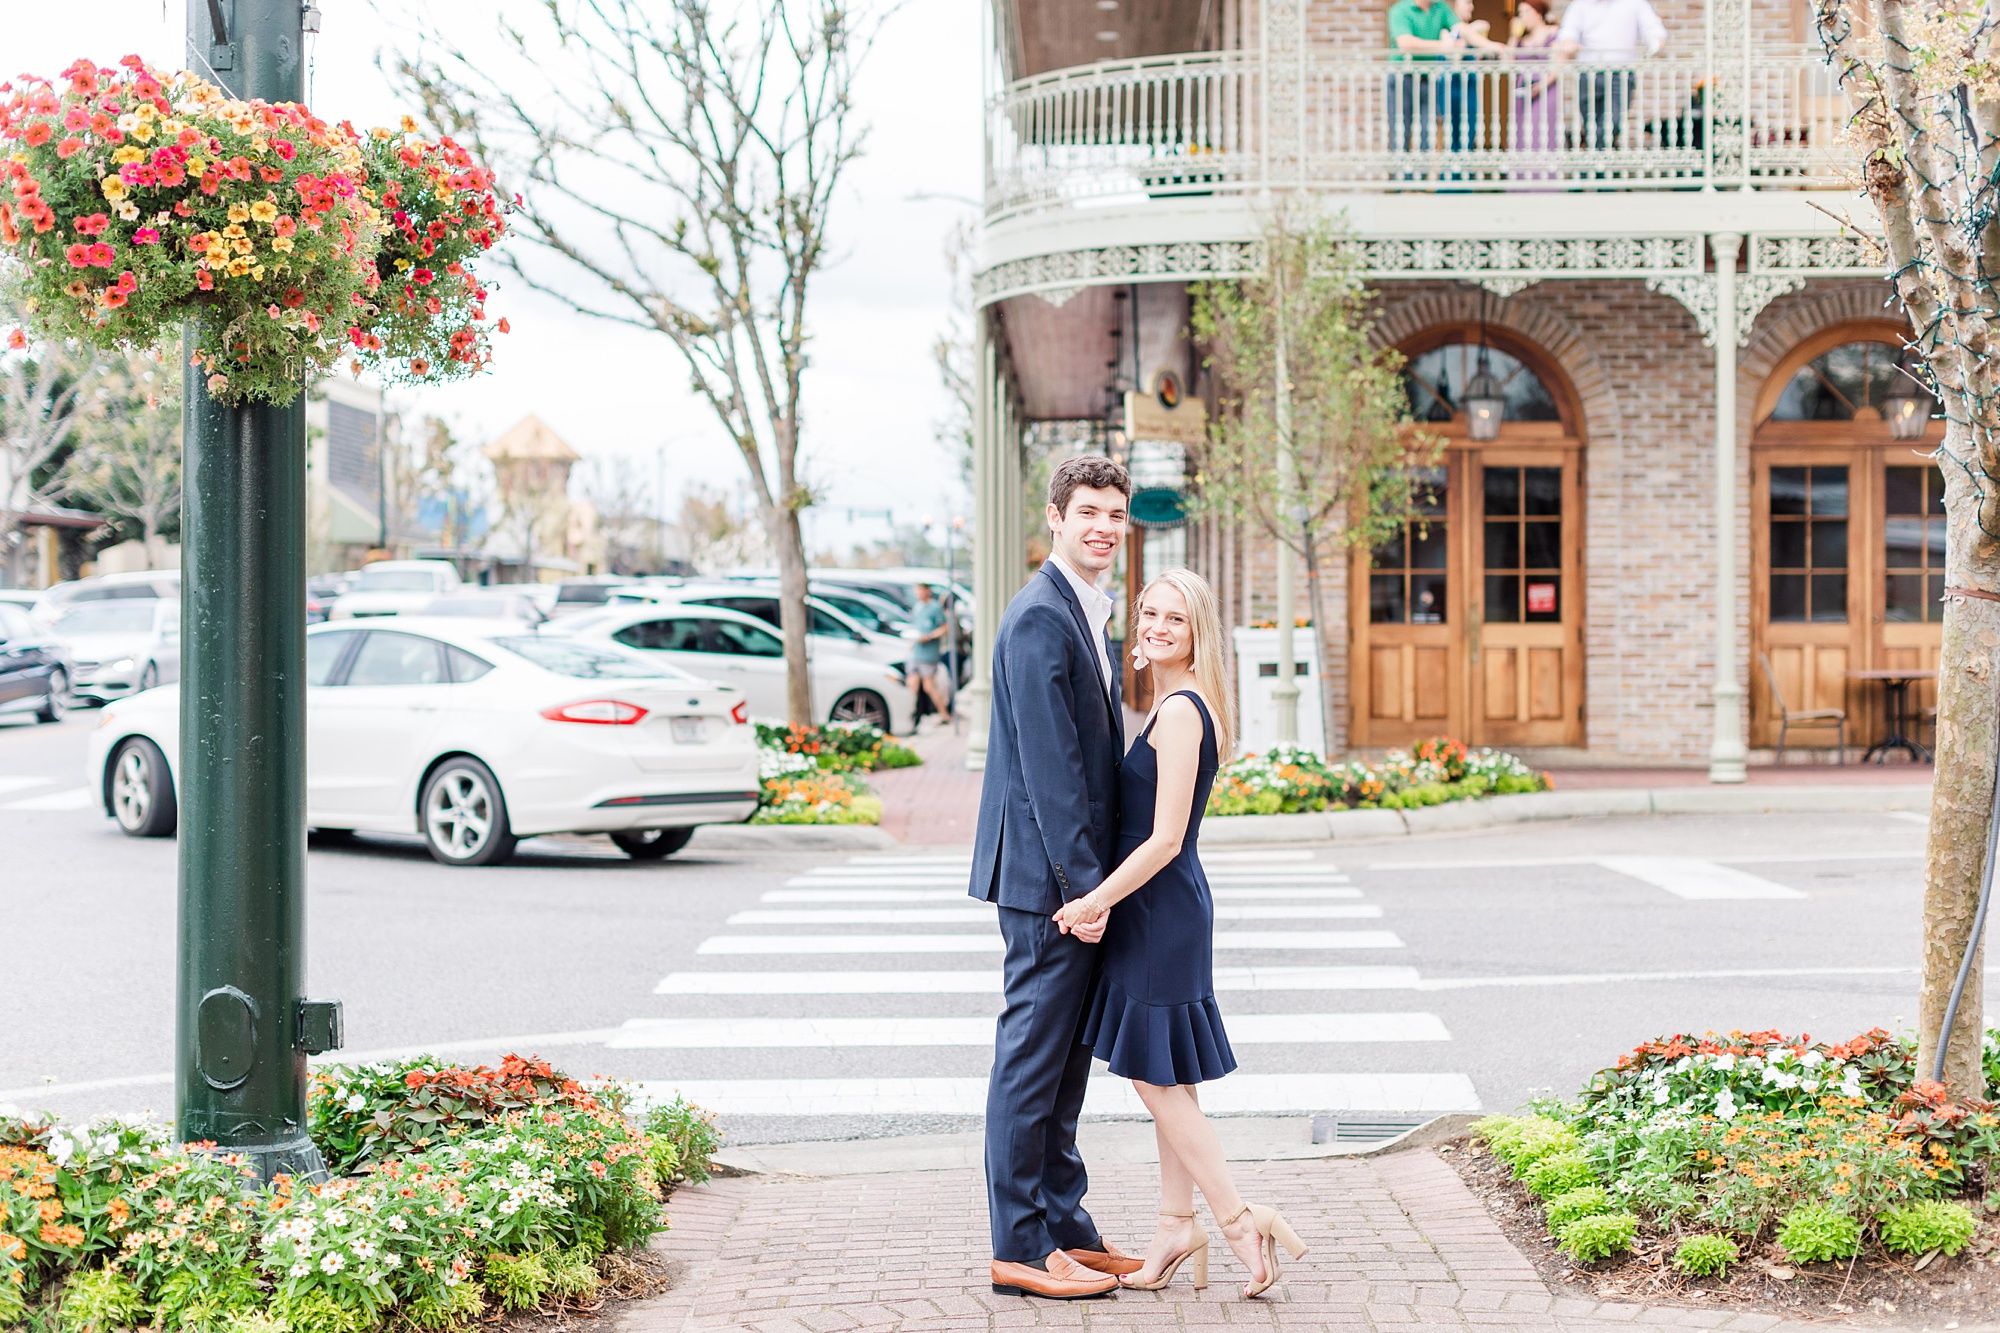 bride and groom pose by crosswalk in Alabama town